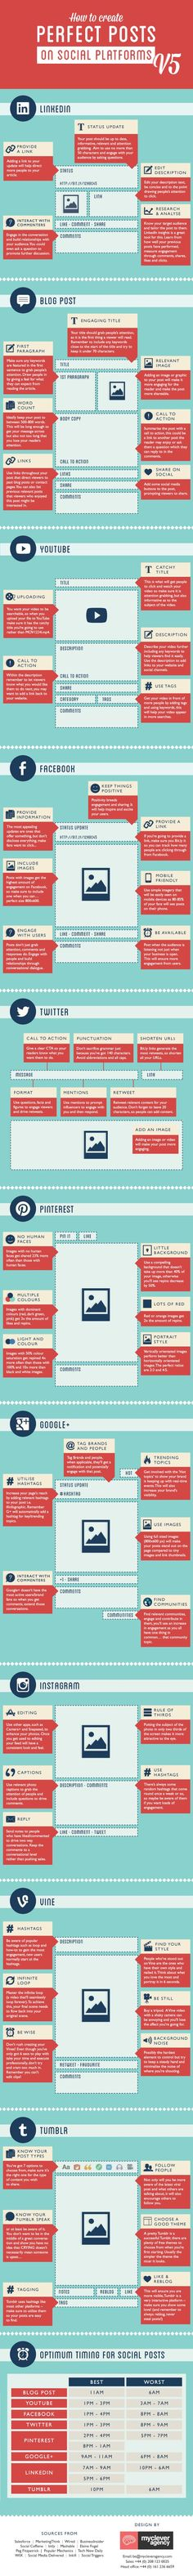 Social Media Posting Guide #SM #SMM #SocialMedia